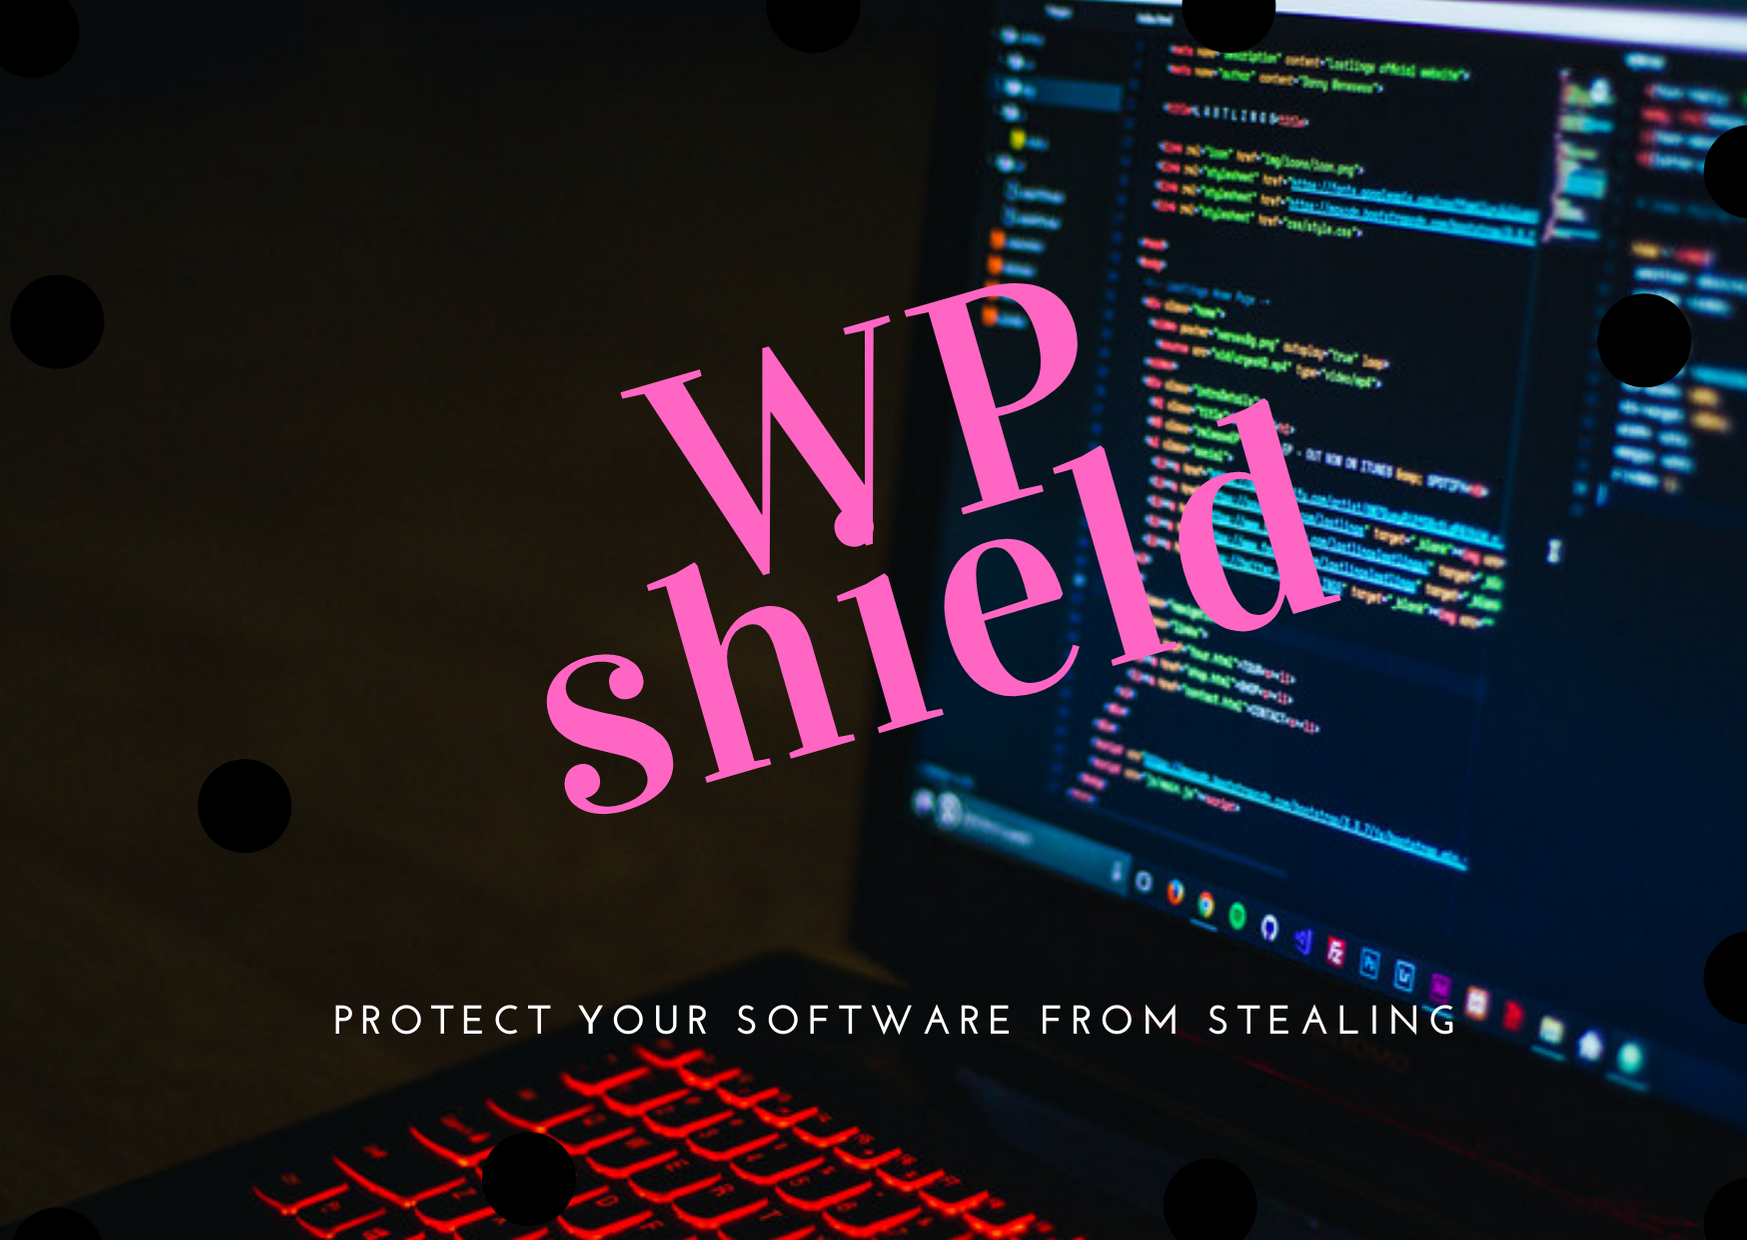 WP SHIELD, protect your software from stealing